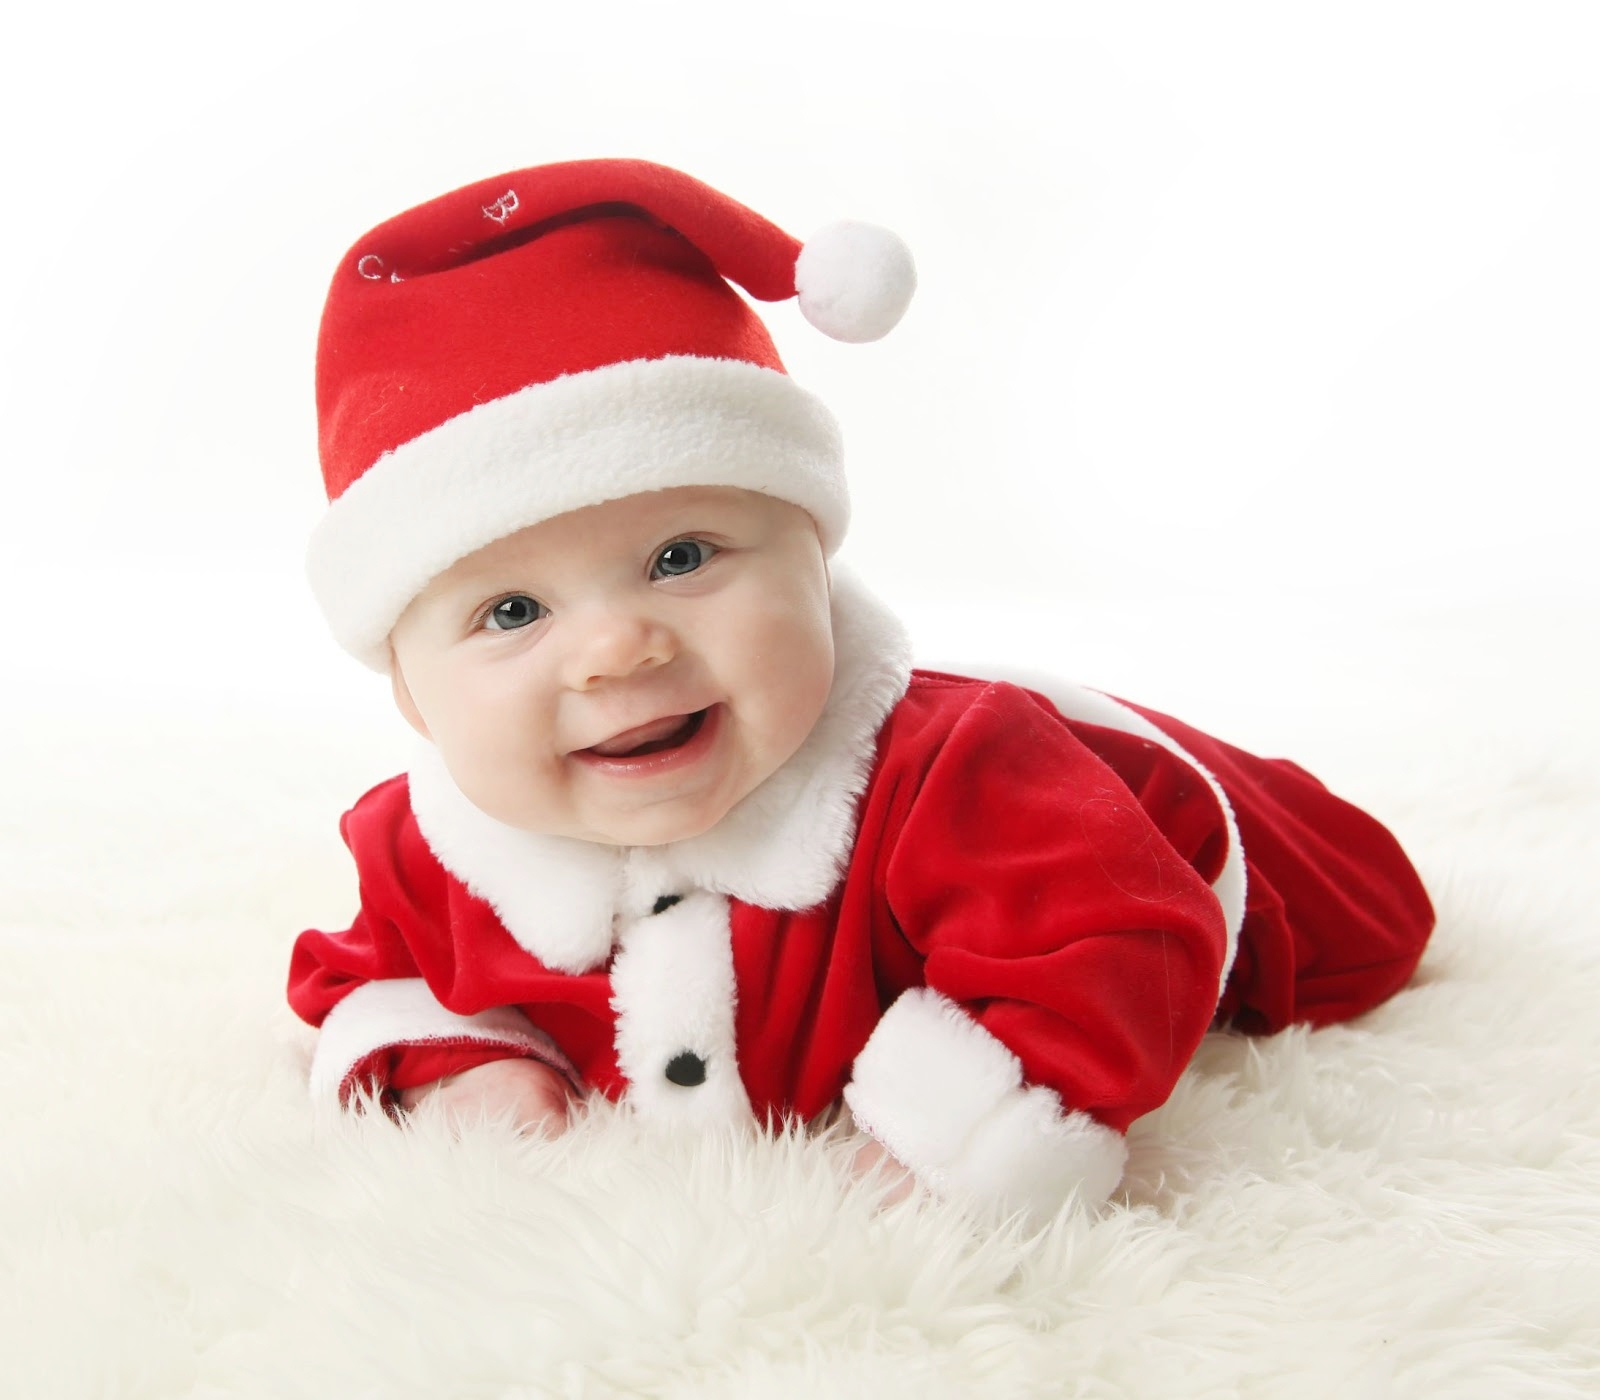 Baby Wallpaper Pictures Of Cute Babies Best Collection 1600x1400